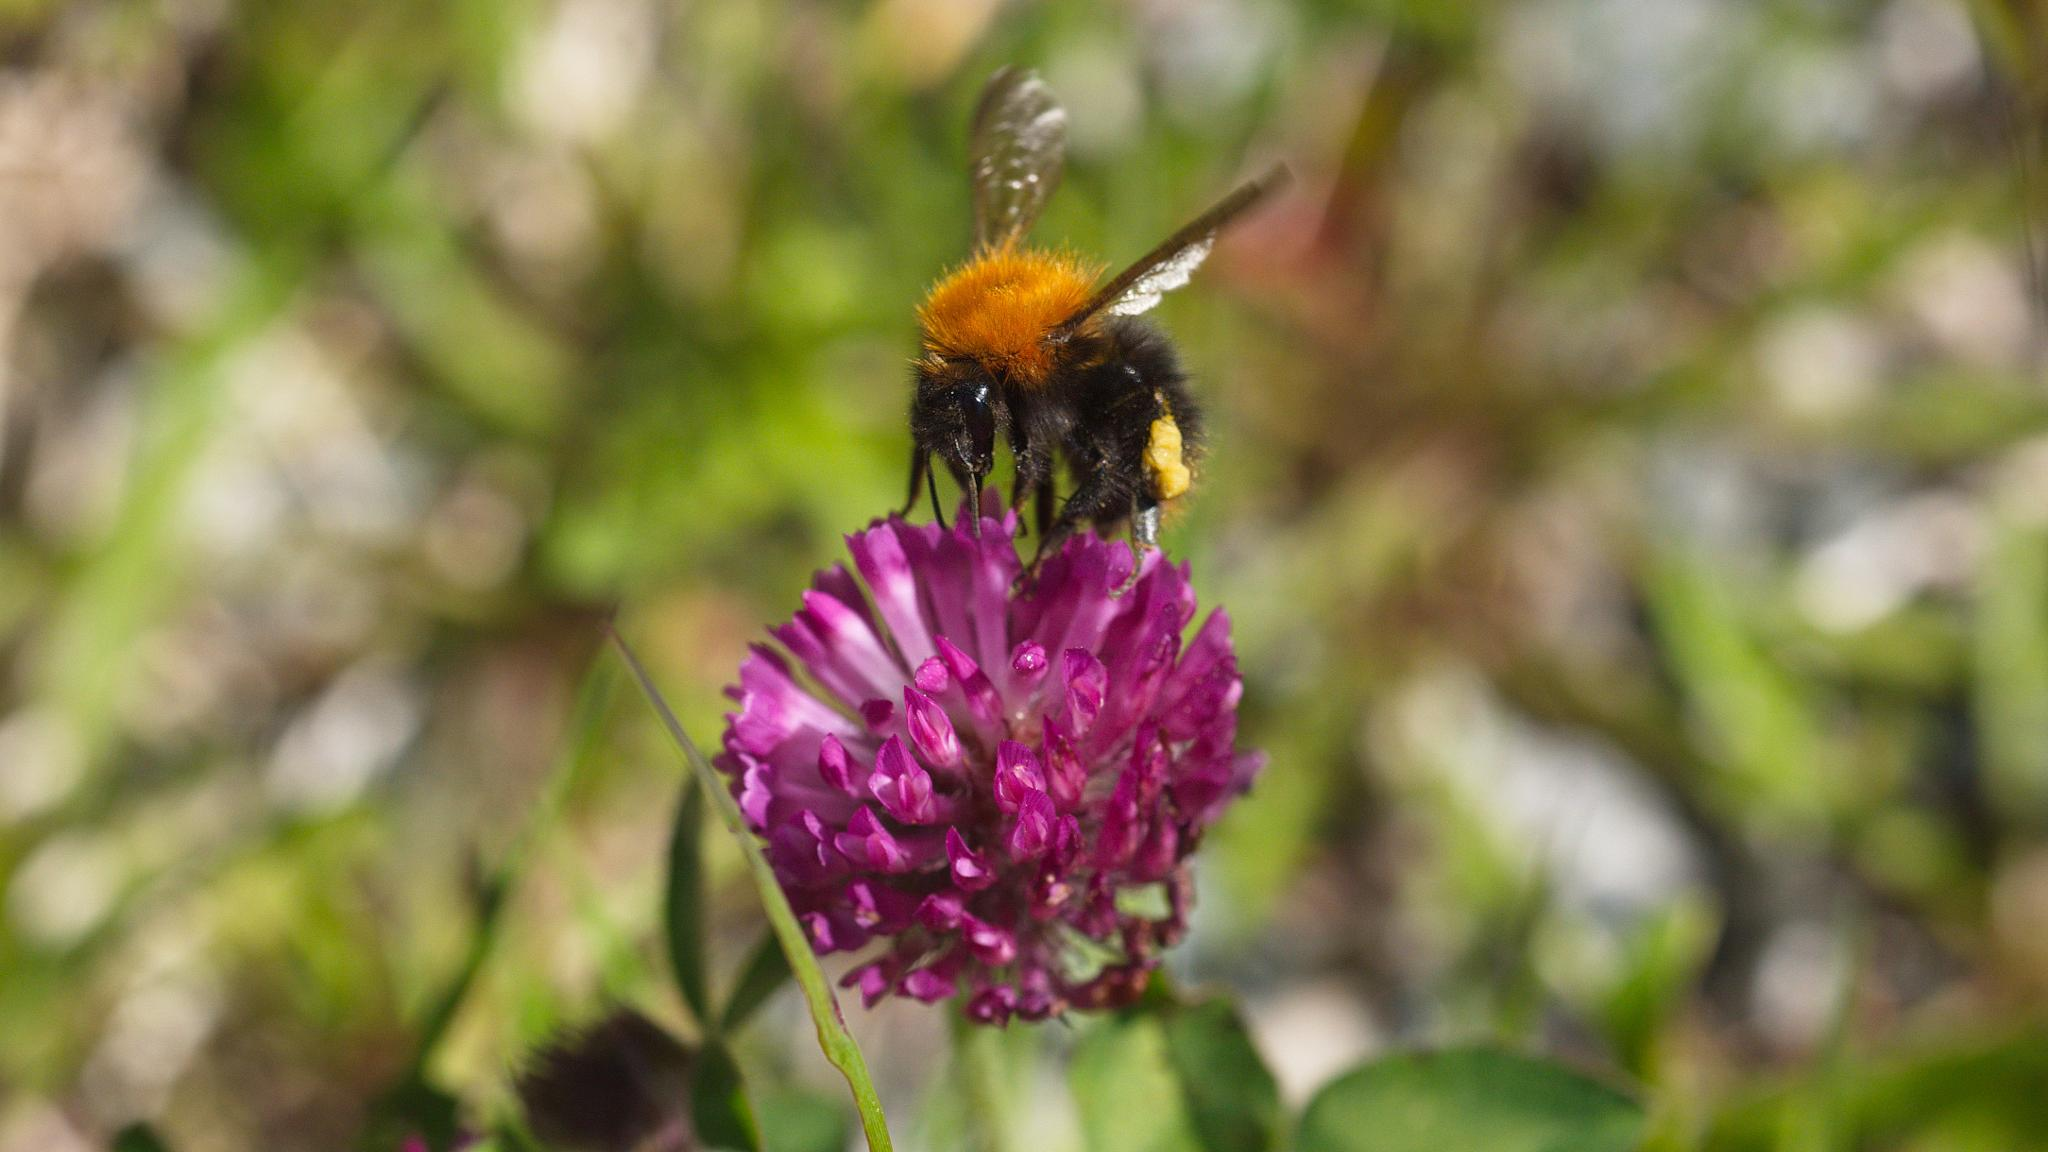 bumblebee on top of the world/flower by Stian Olaisen